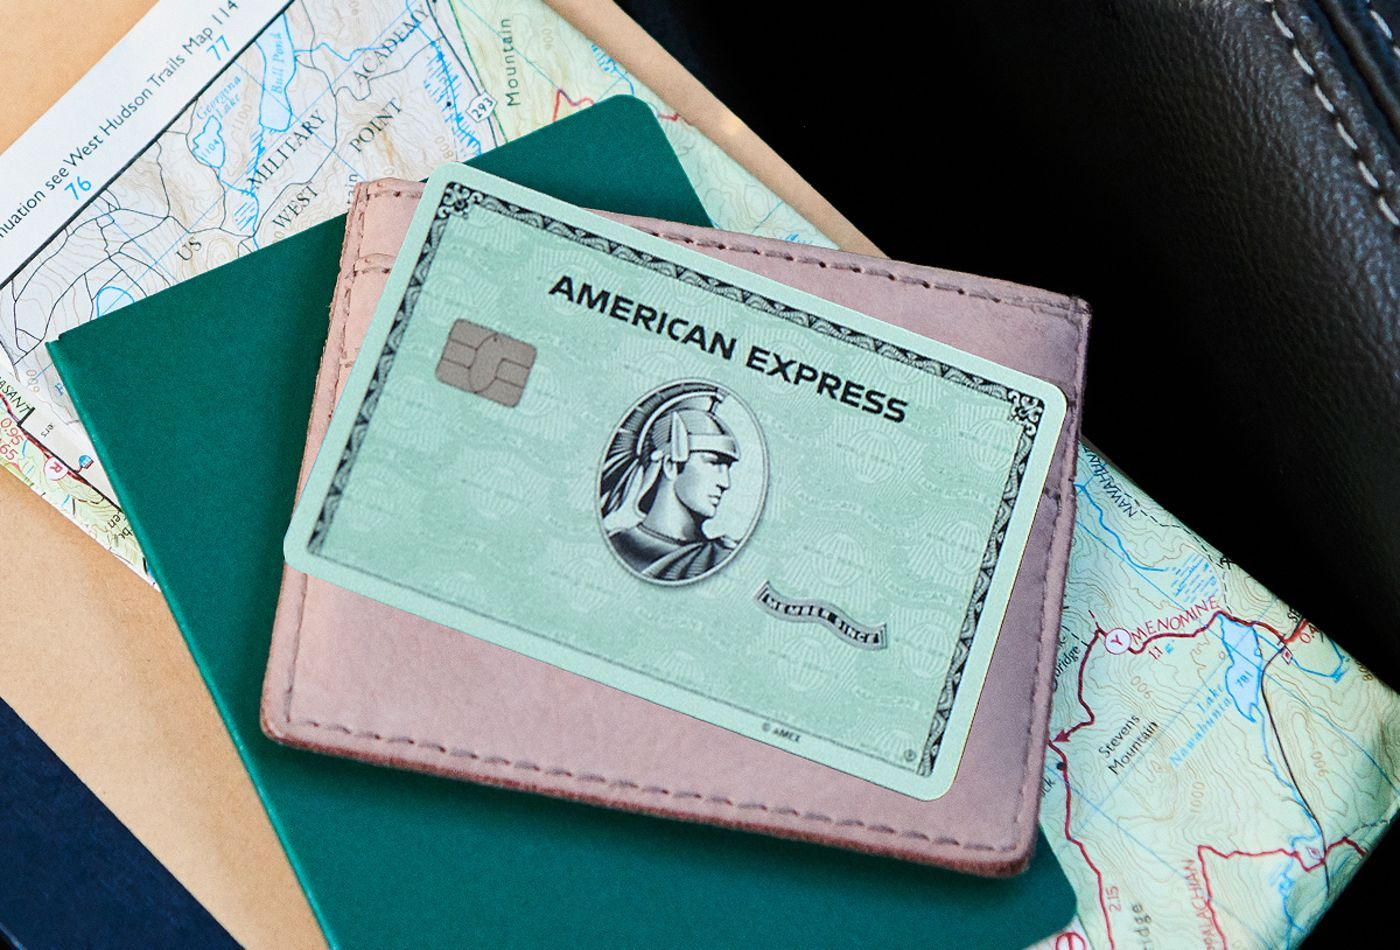 American express green card relaunches with new benefits